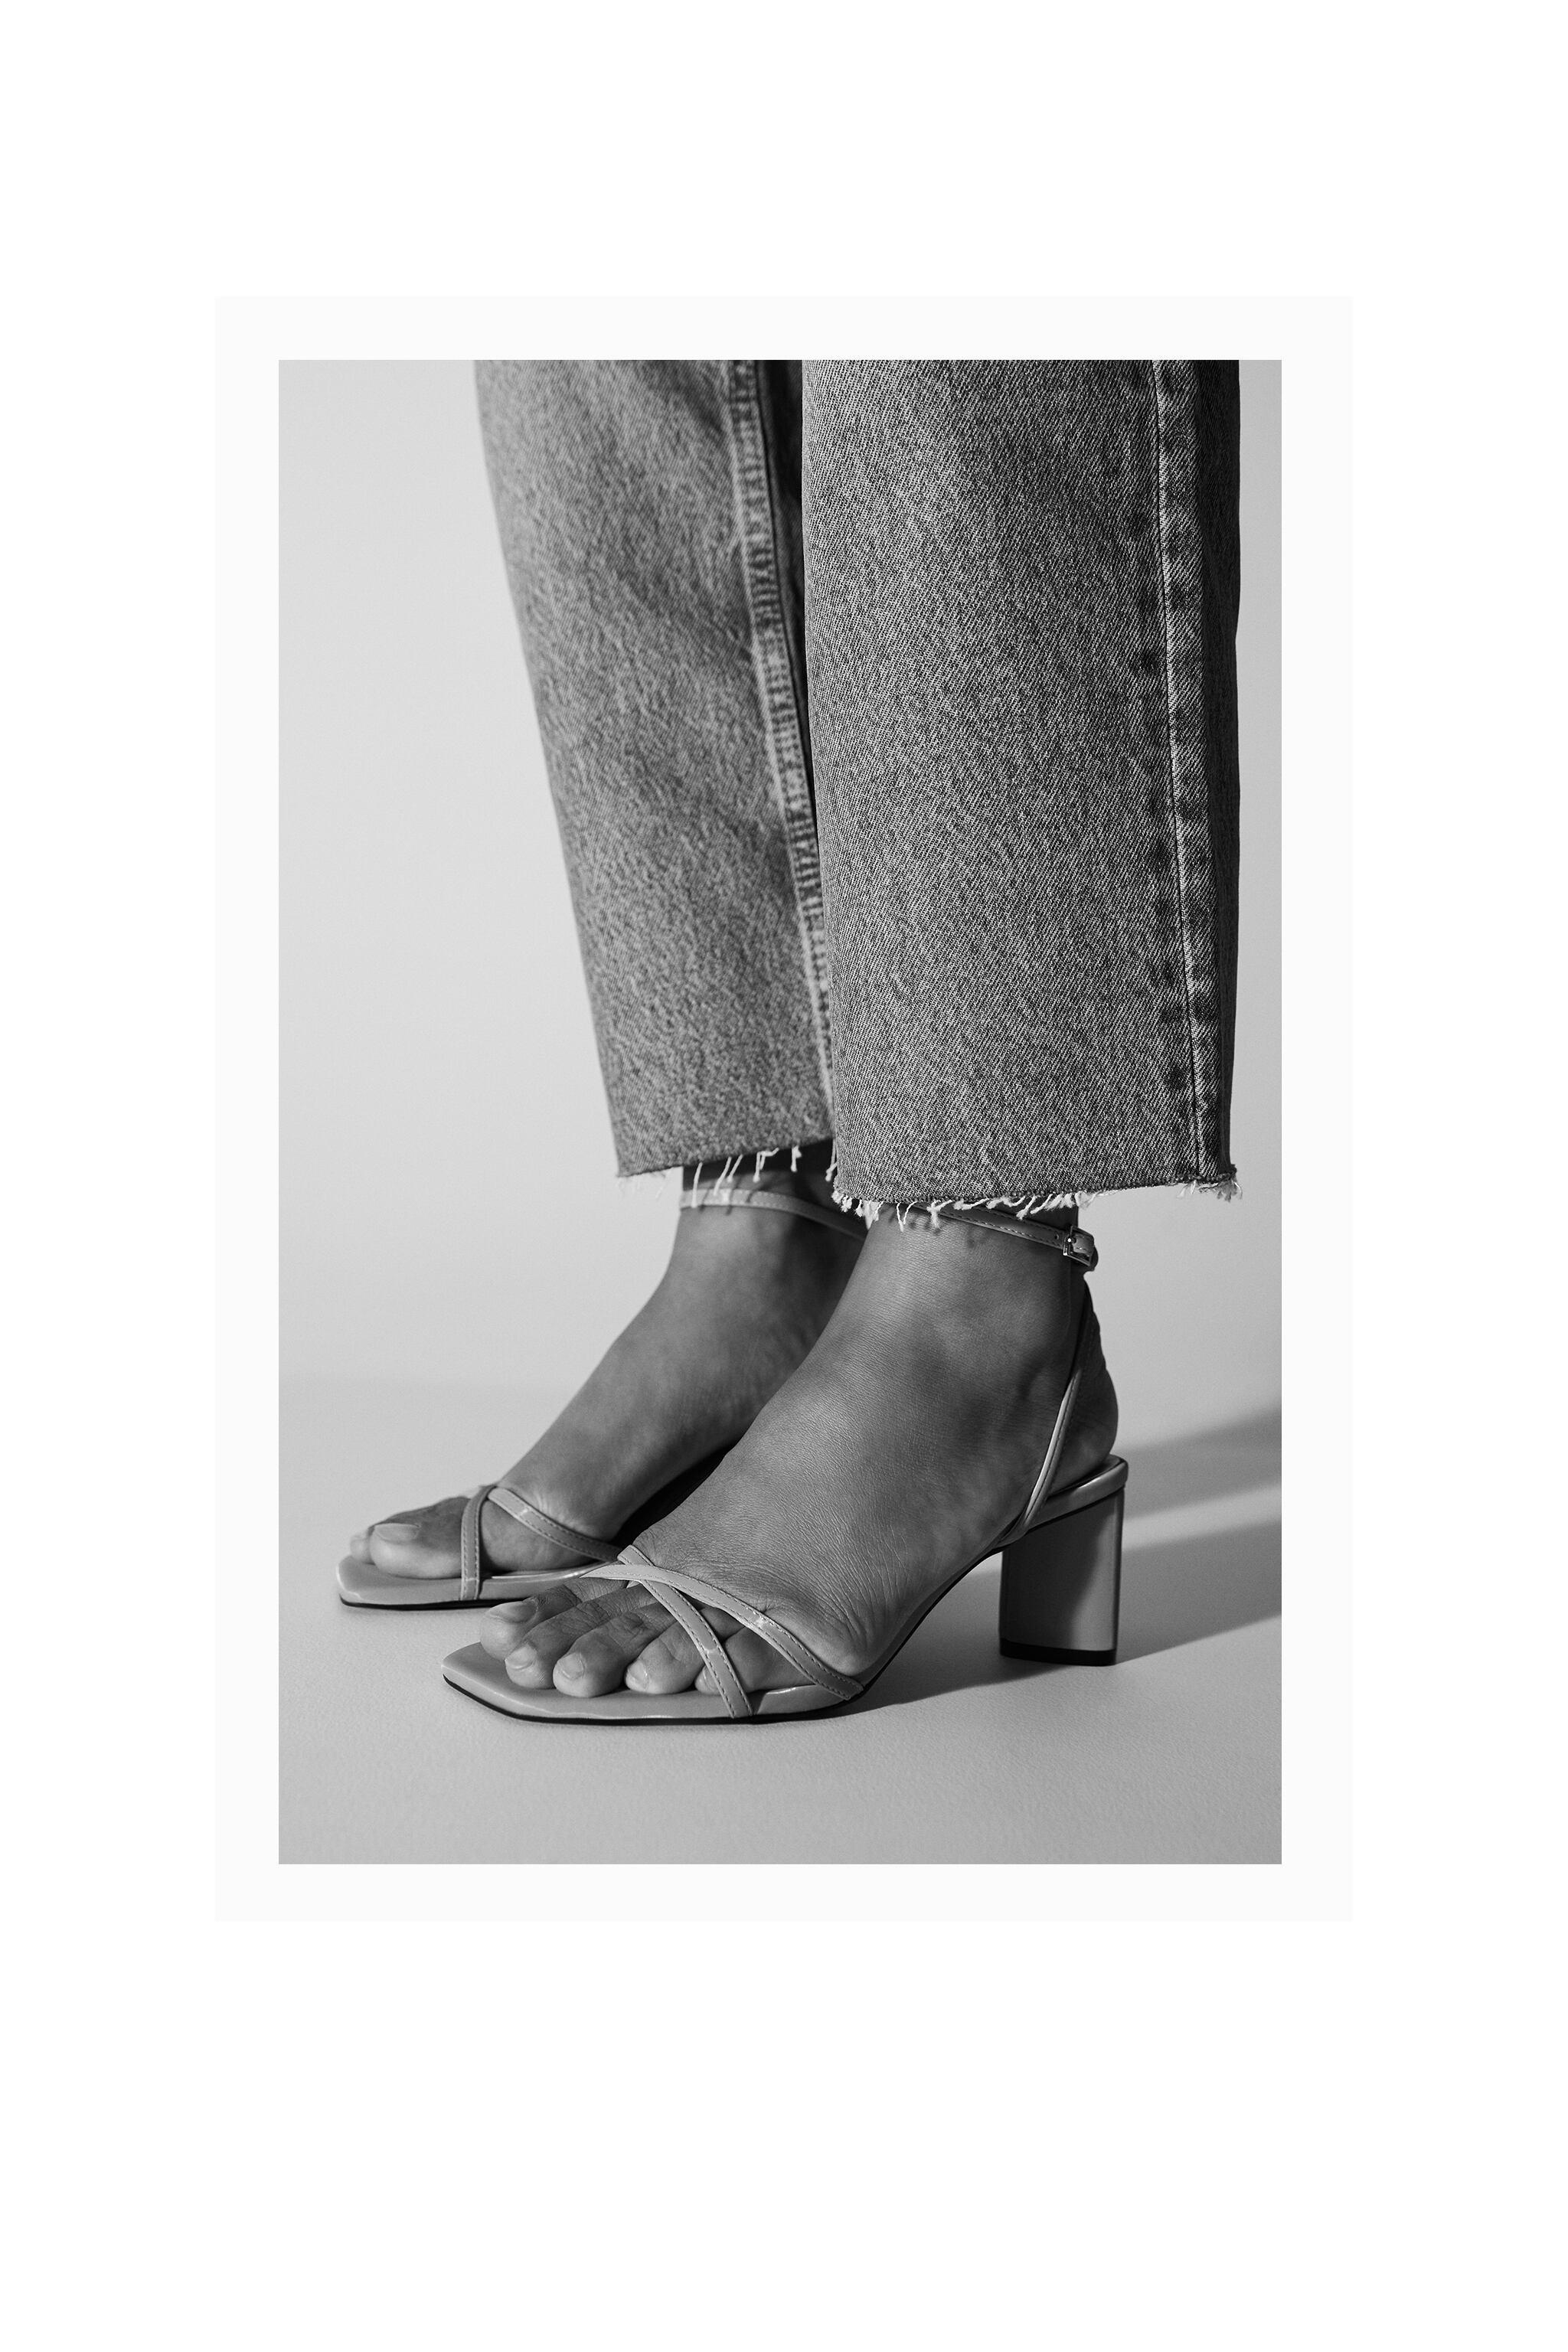 HEELED SANDALS WITH THIN STRAPS 5